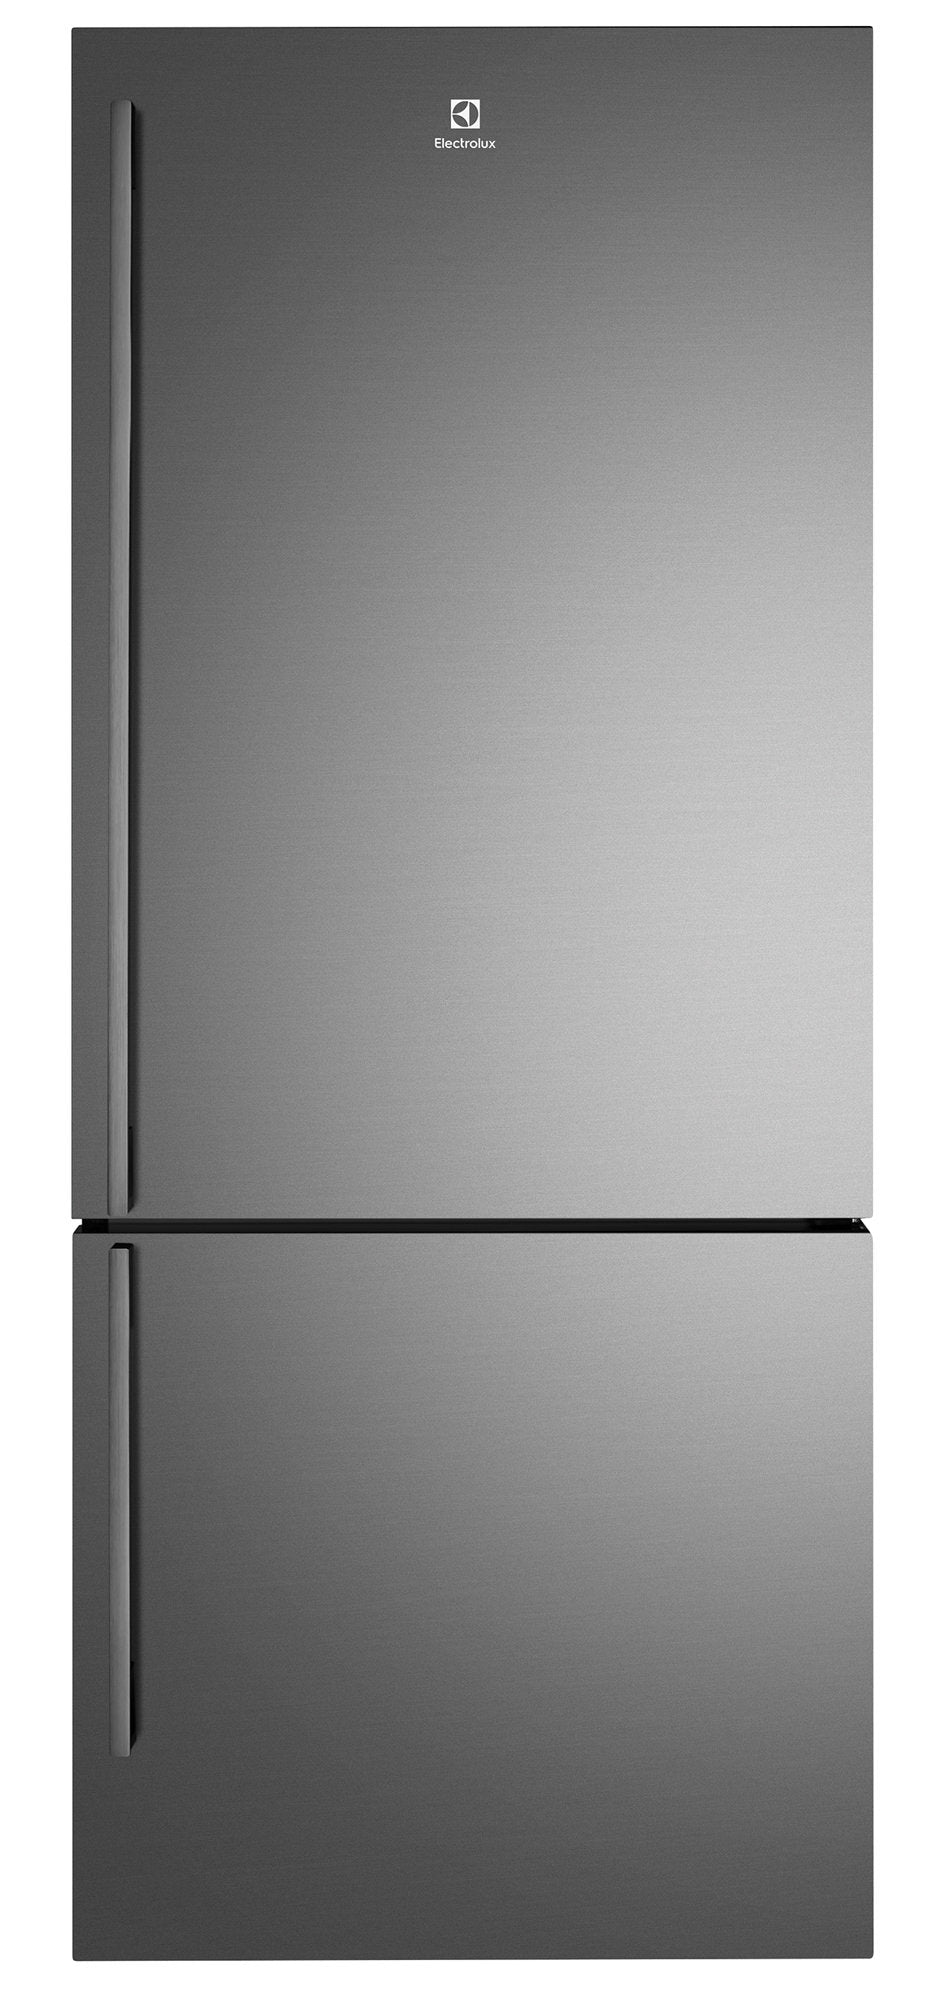 Electrolux Bottom Mount Fridge 529L - Brisbane Home Appliances